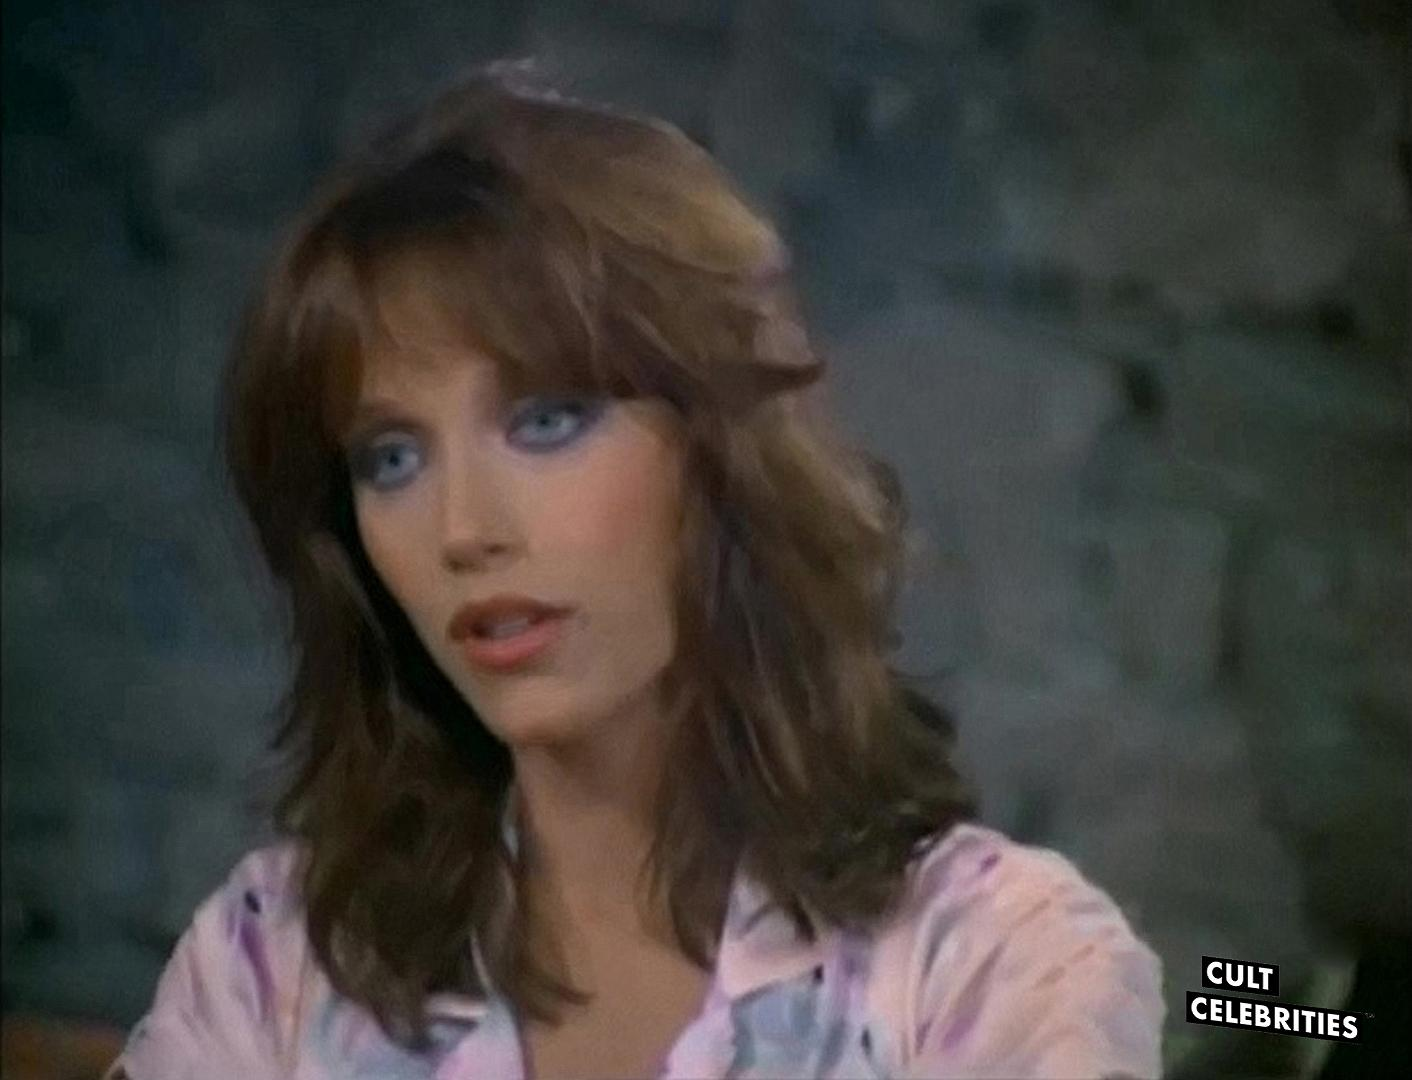 Tanya Roberts on the 5th Season of Charlie's AngelsTanya Roberts on the 5th Season of Charlie's AngelsTanya Roberts on the 5th Season of Charlie's AngelsTanya Roberts on the 5th Season of Charlie's AngelsTanya Roberts on the 5th Season of Charlie's AngelsTanya Roberts on the 5th Season of Charlie's AngelsTanya Roberts on the 5th Season of Charlie's AngelsTanya Roberts on the 5th Season of Charlie's AngelsTanya Roberts on the 5th Season of Charlie's AngelsTanya Roberts on the 5th Season of Charlie's AngelsTanya Roberts on the 5th Season of Charlie's AngelsTanya Roberts on the 5th Season of Charlie's Angels